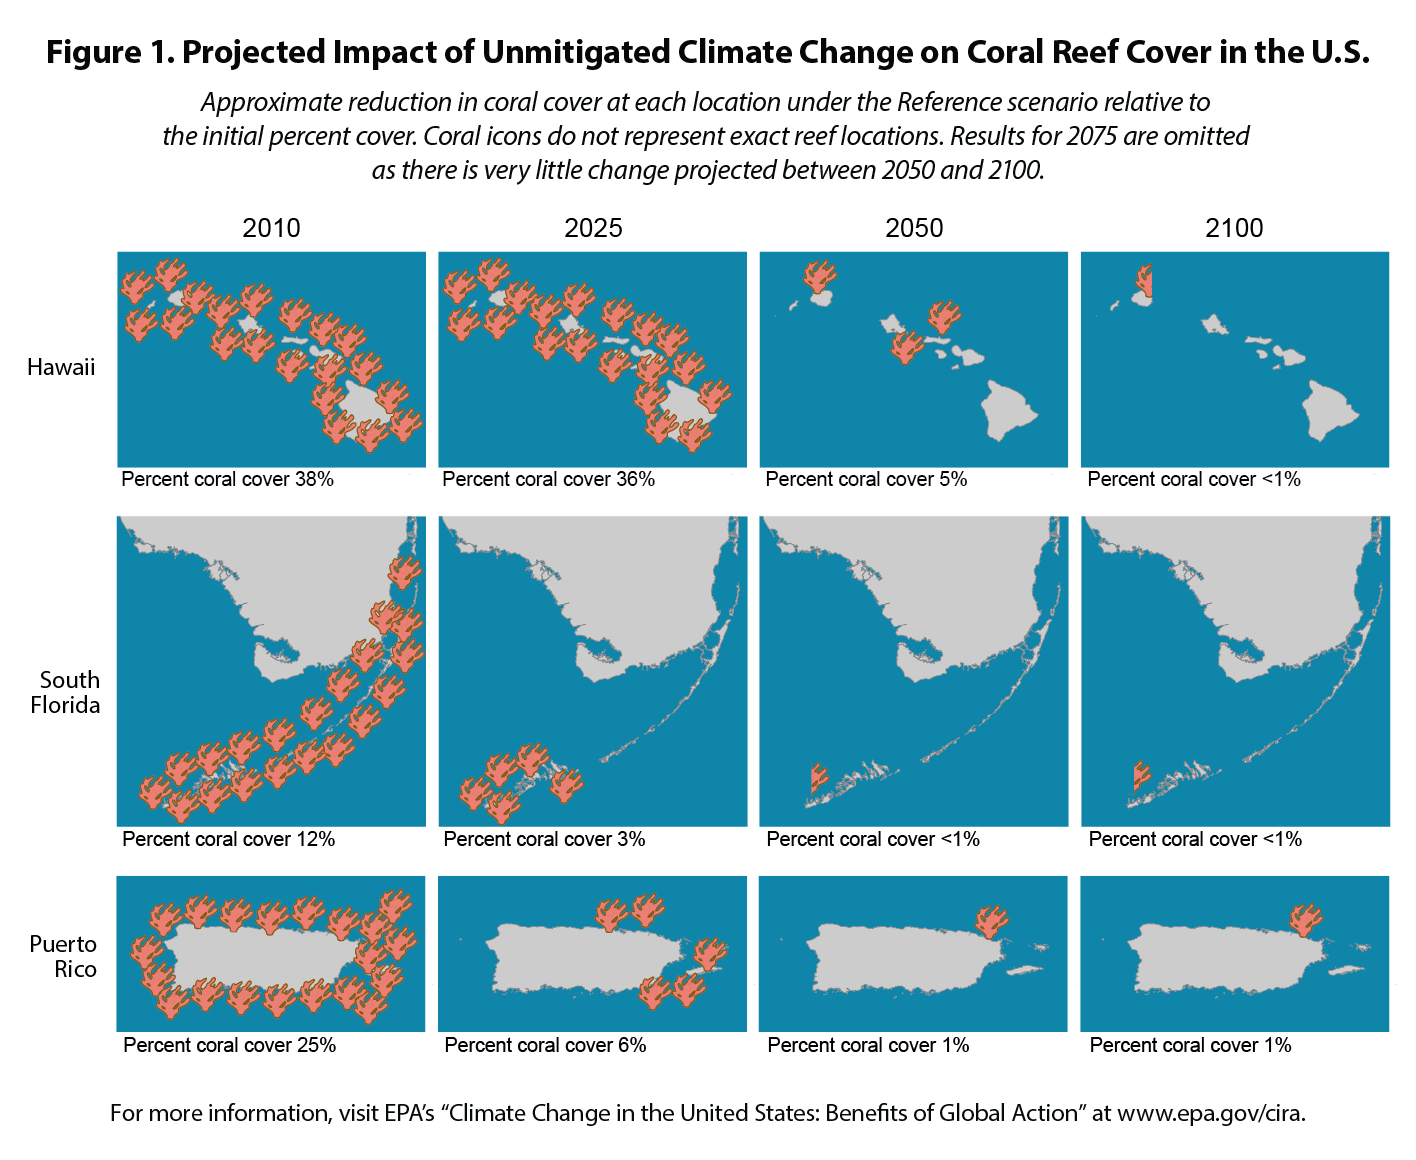 Climate Action Benefits: Coral Reefs | Climate Change in